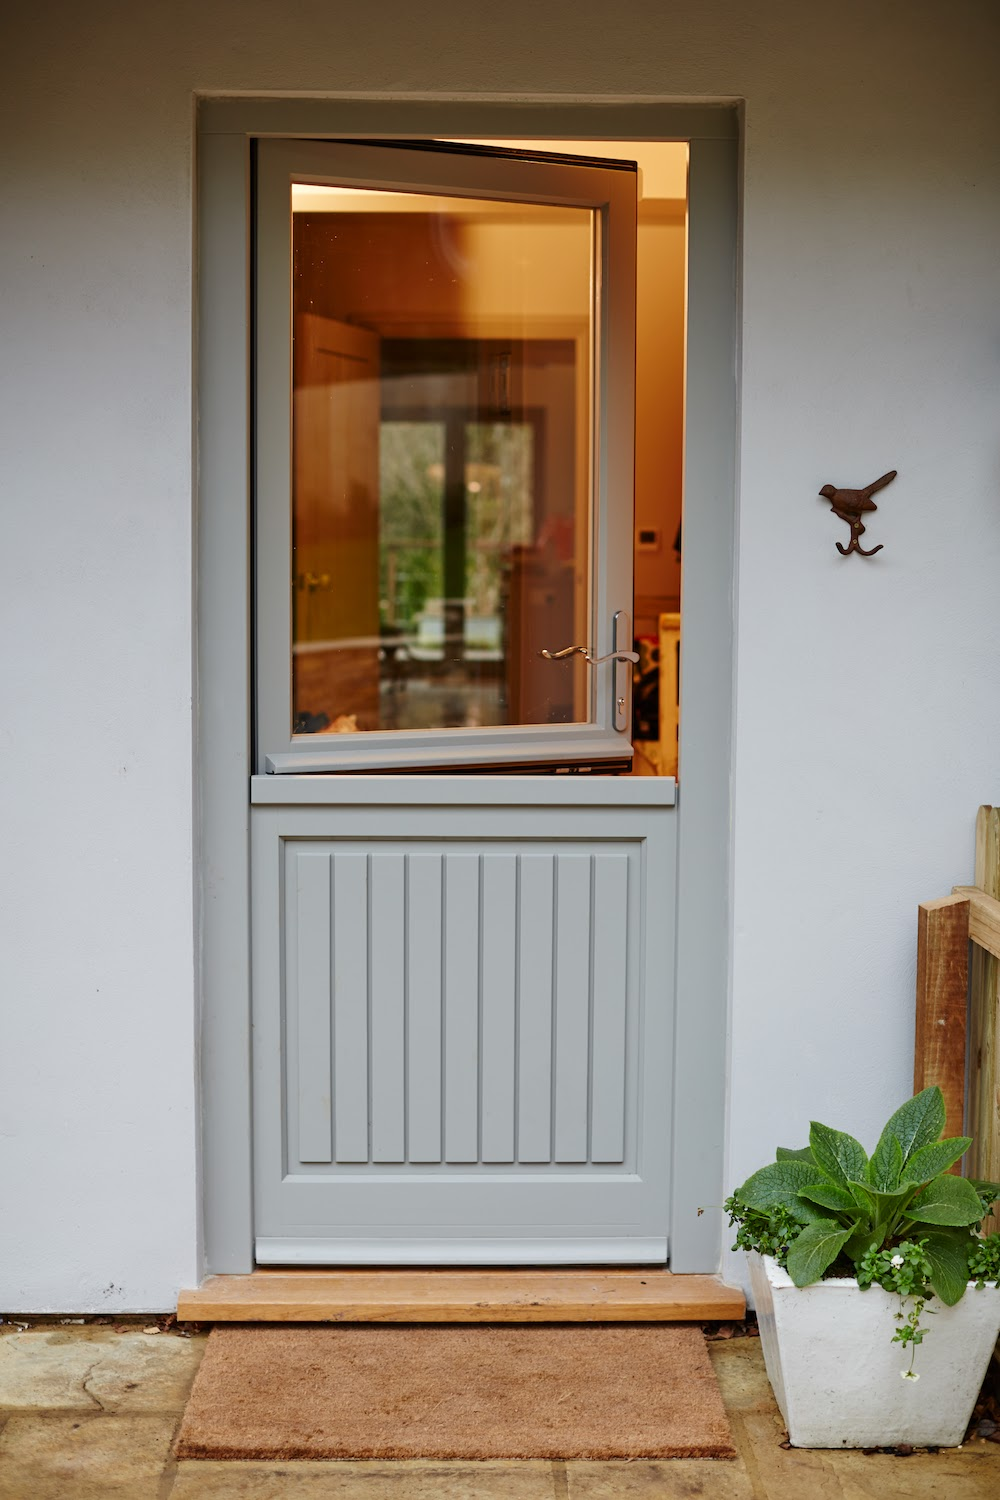 Stable Door Window : Home makeover your with wooden windows evans crittens